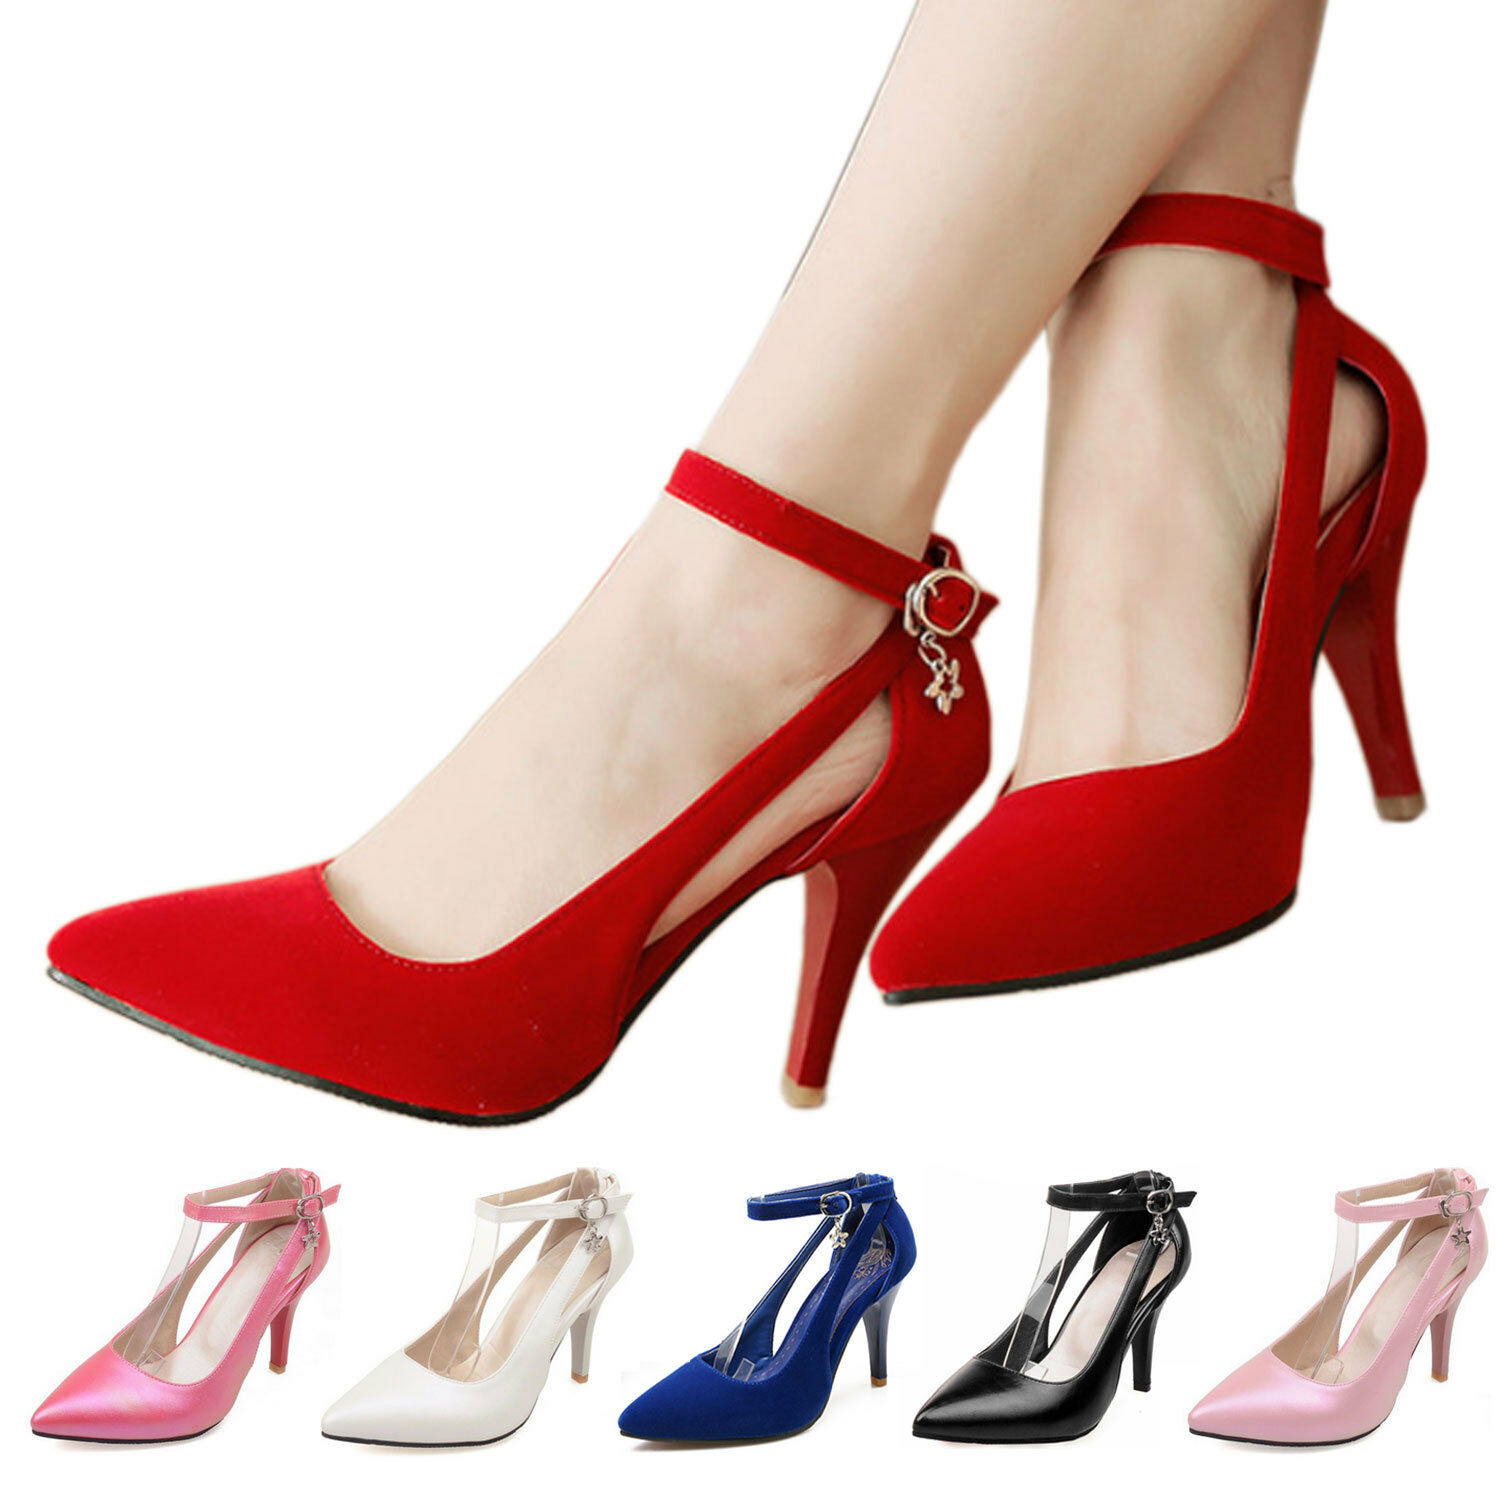 Pointed toe Sandals shoes high heels Prom Buckle Womens Pumps Size 0-18 CCC